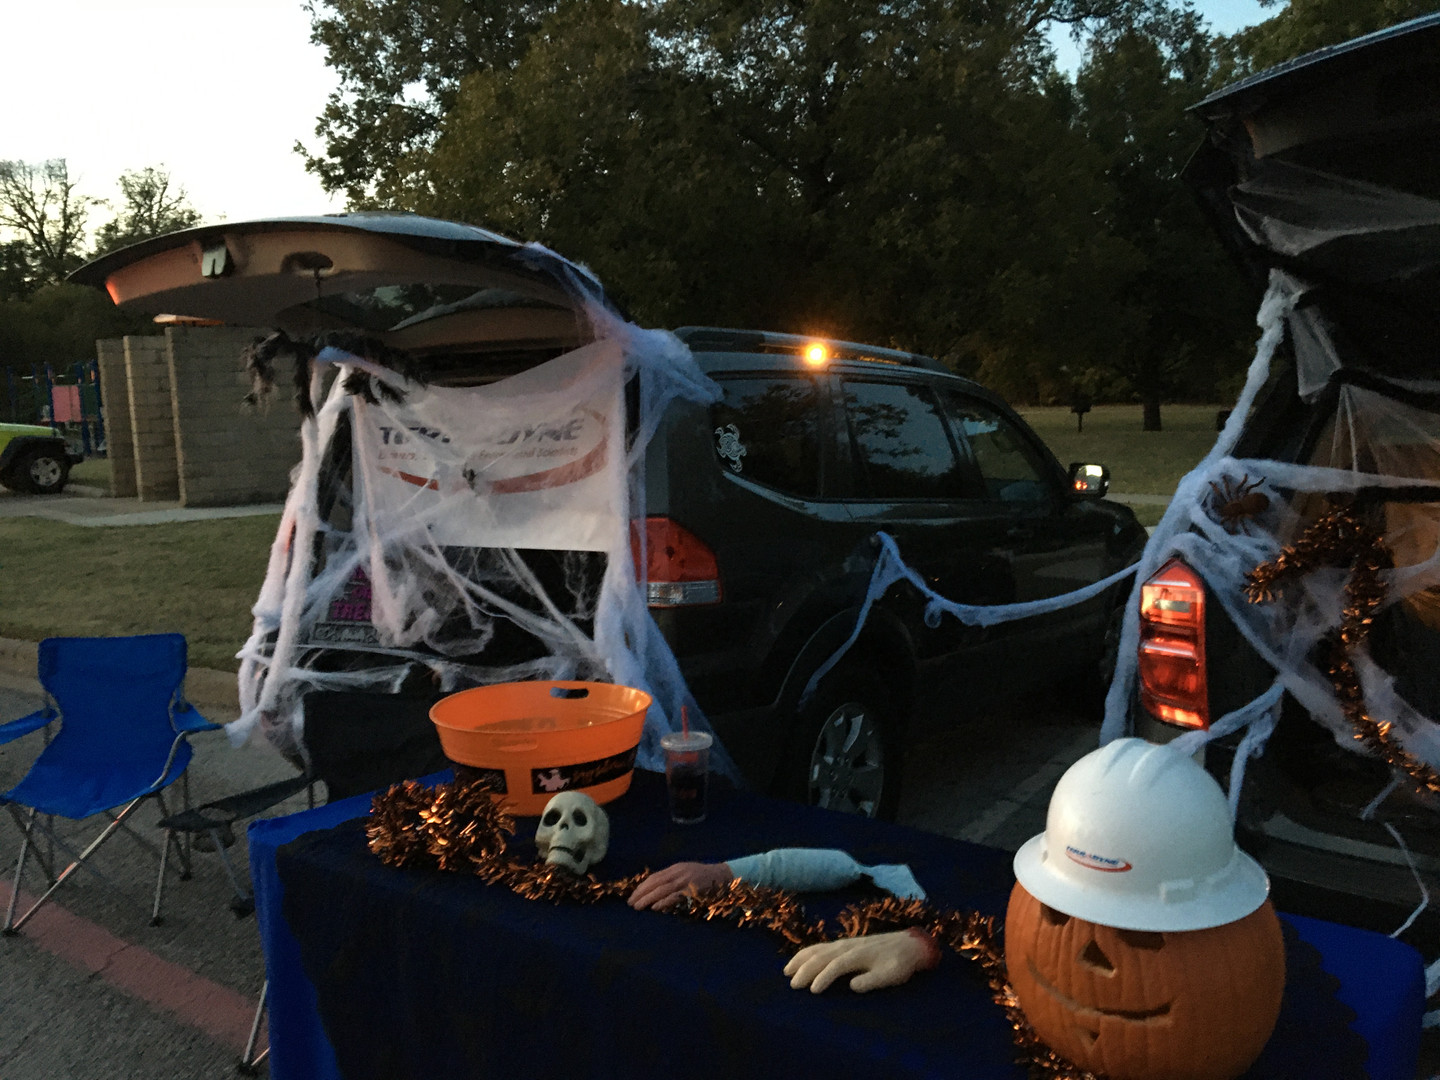 City of Euless Trunk or Treat event.